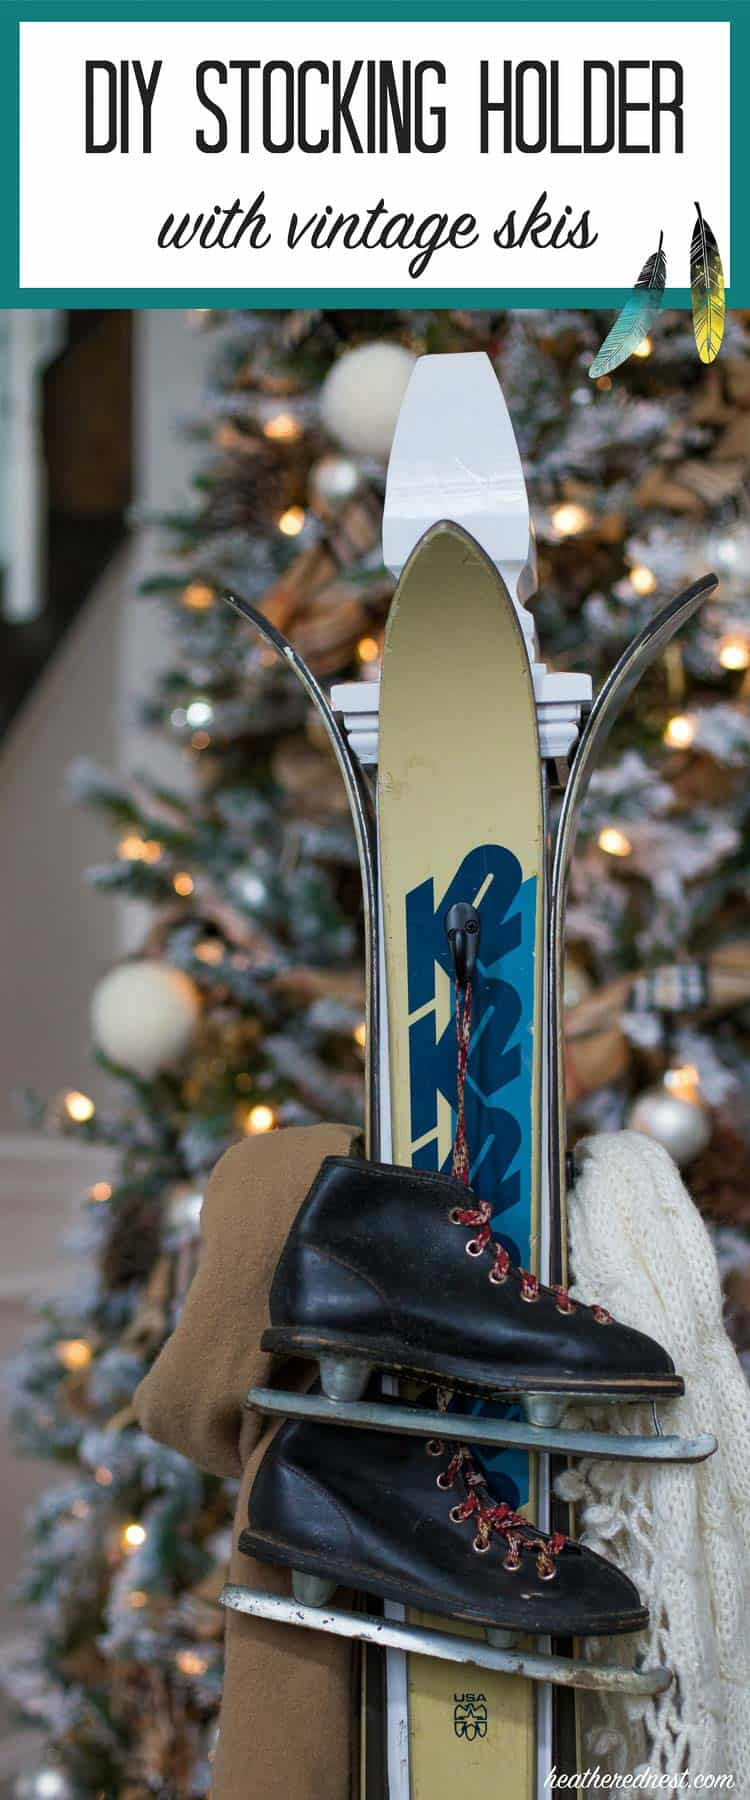 Awesome idea! DIY stocking holder / DIY coat rack with vintage skis! from www.heatherednest.com and Home Depot #DIYWorkshop